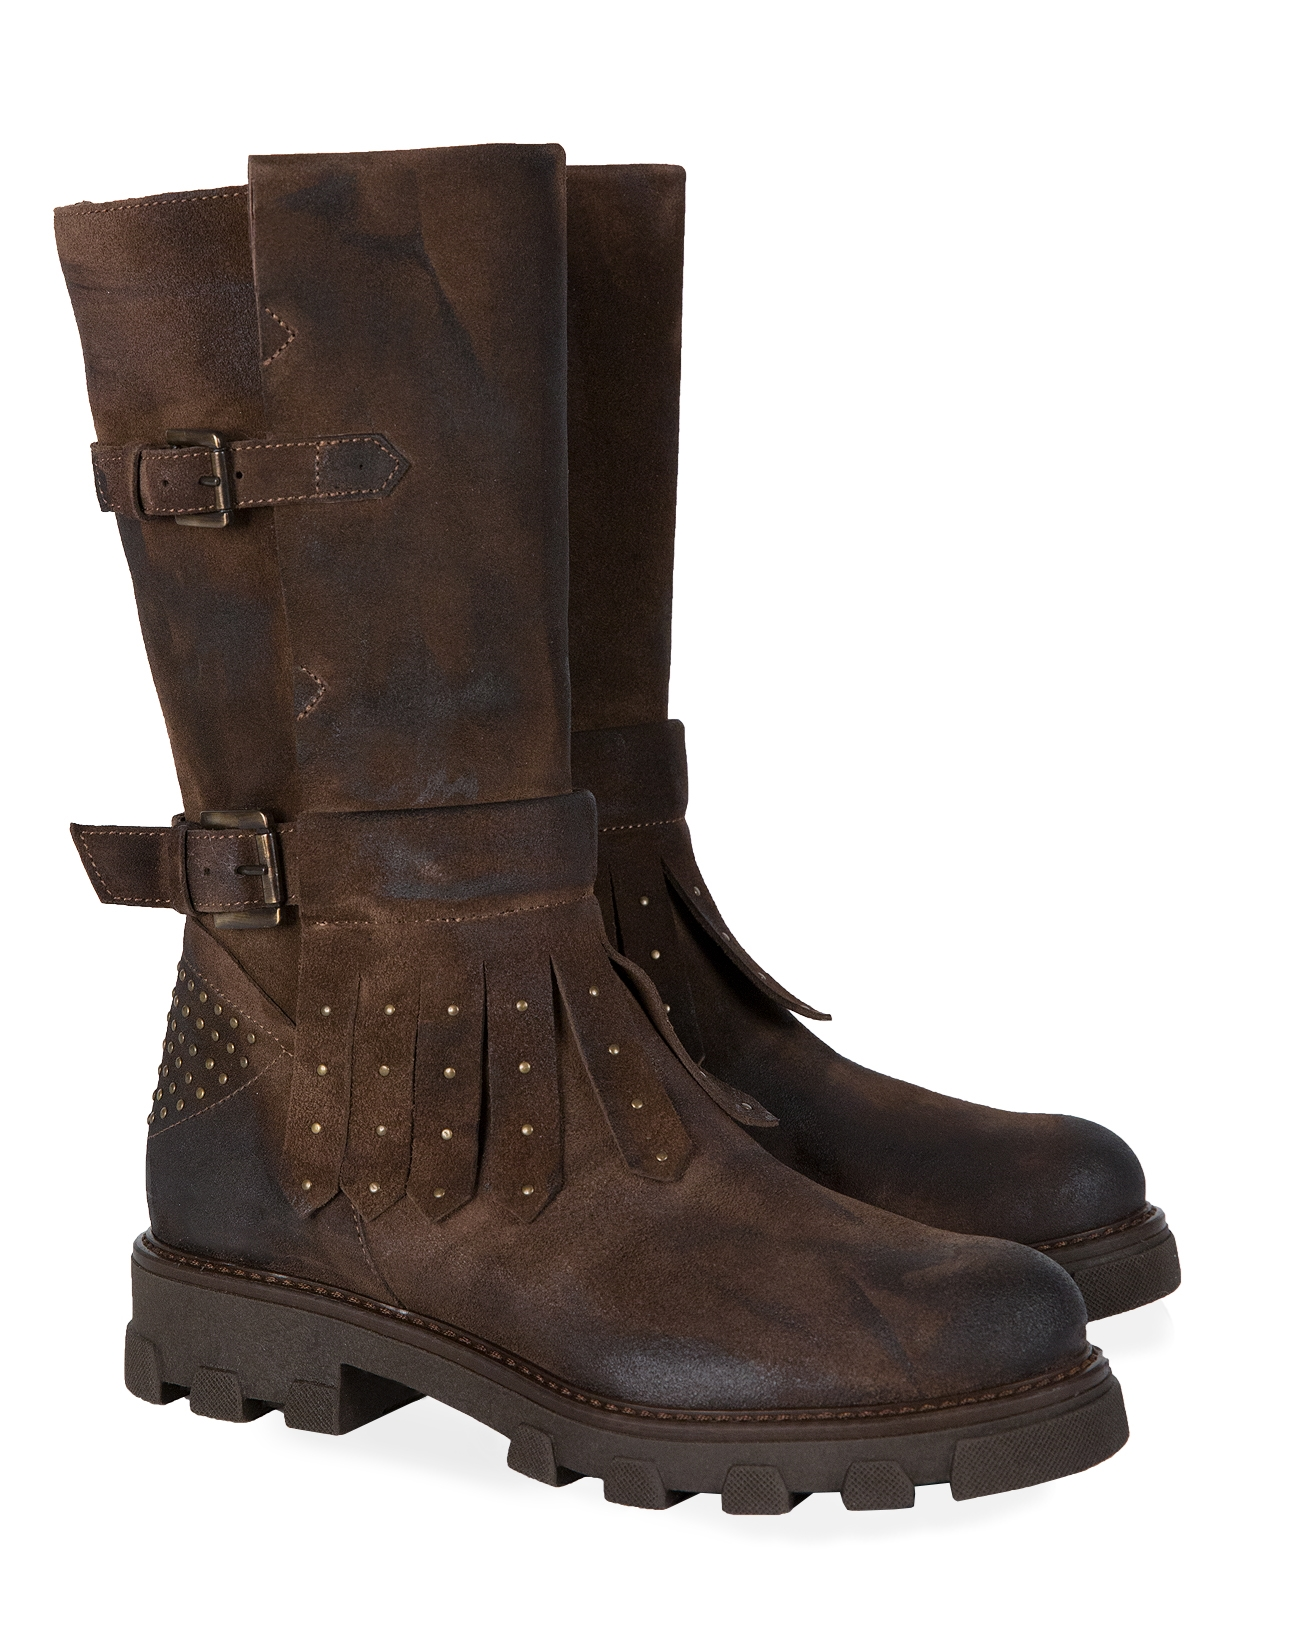 Warrior Boots - EU 37 - Brown - 455